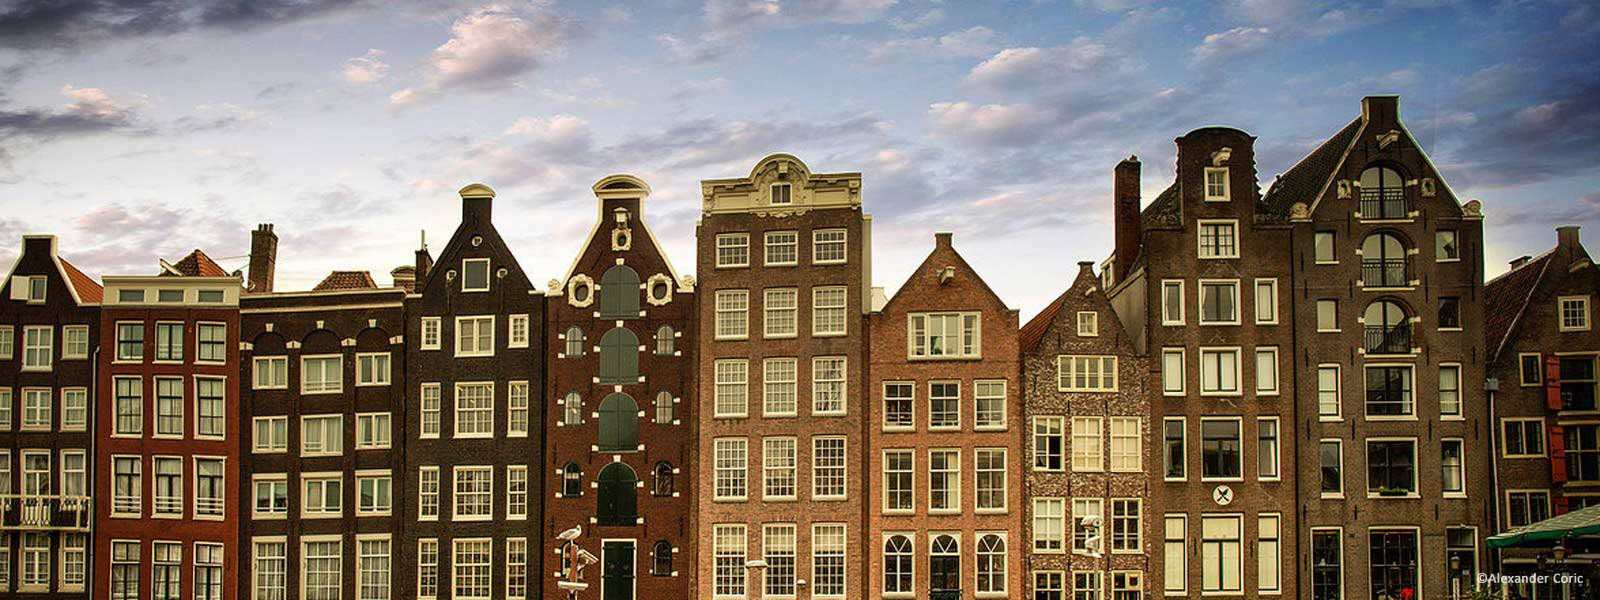 Coach tours, guided walks, canal cruises, private car and bicycle tours, all-in various cities and regions of the Netherlandsbook now